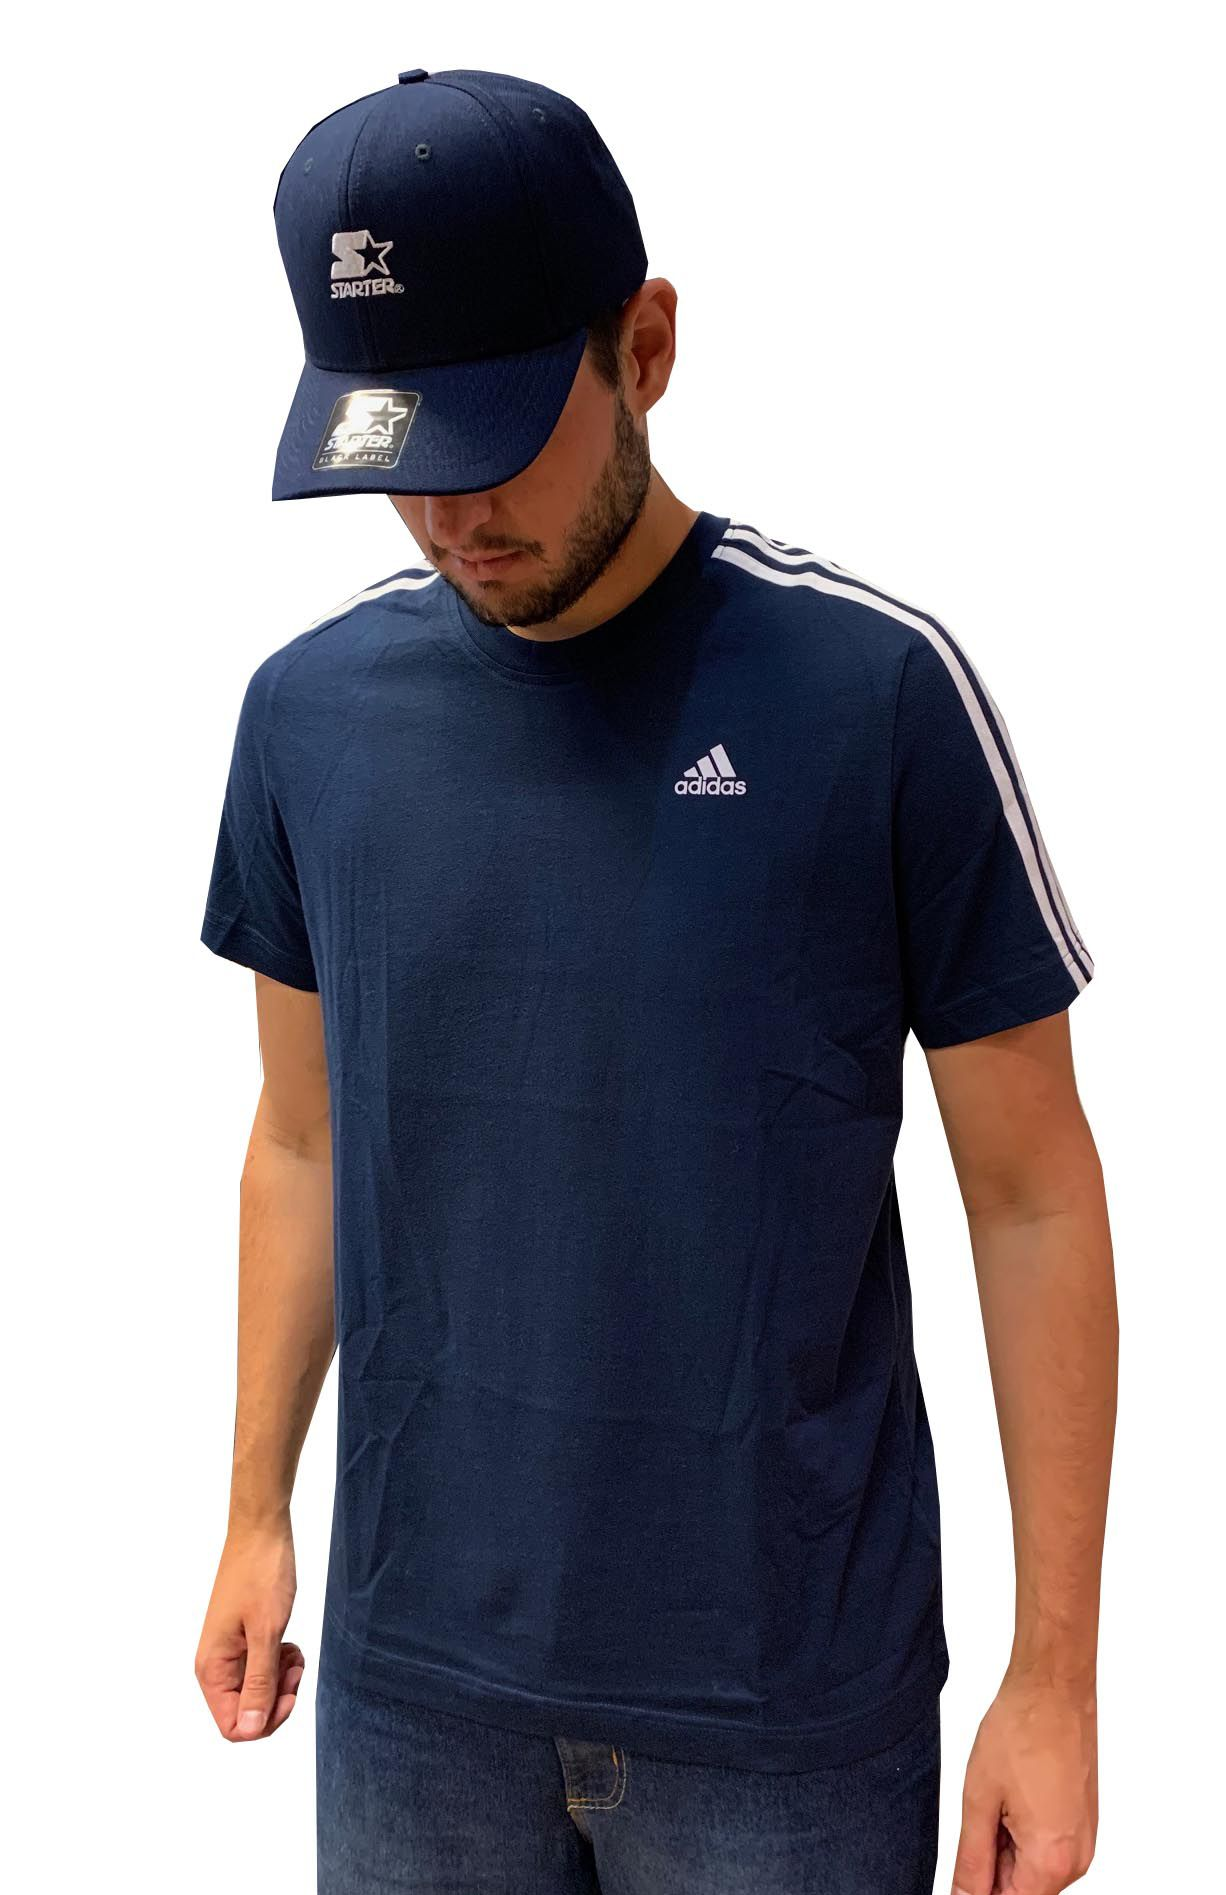 Camiseta Adidas ESSENTIALS 3 STRIPES Masculina 47359